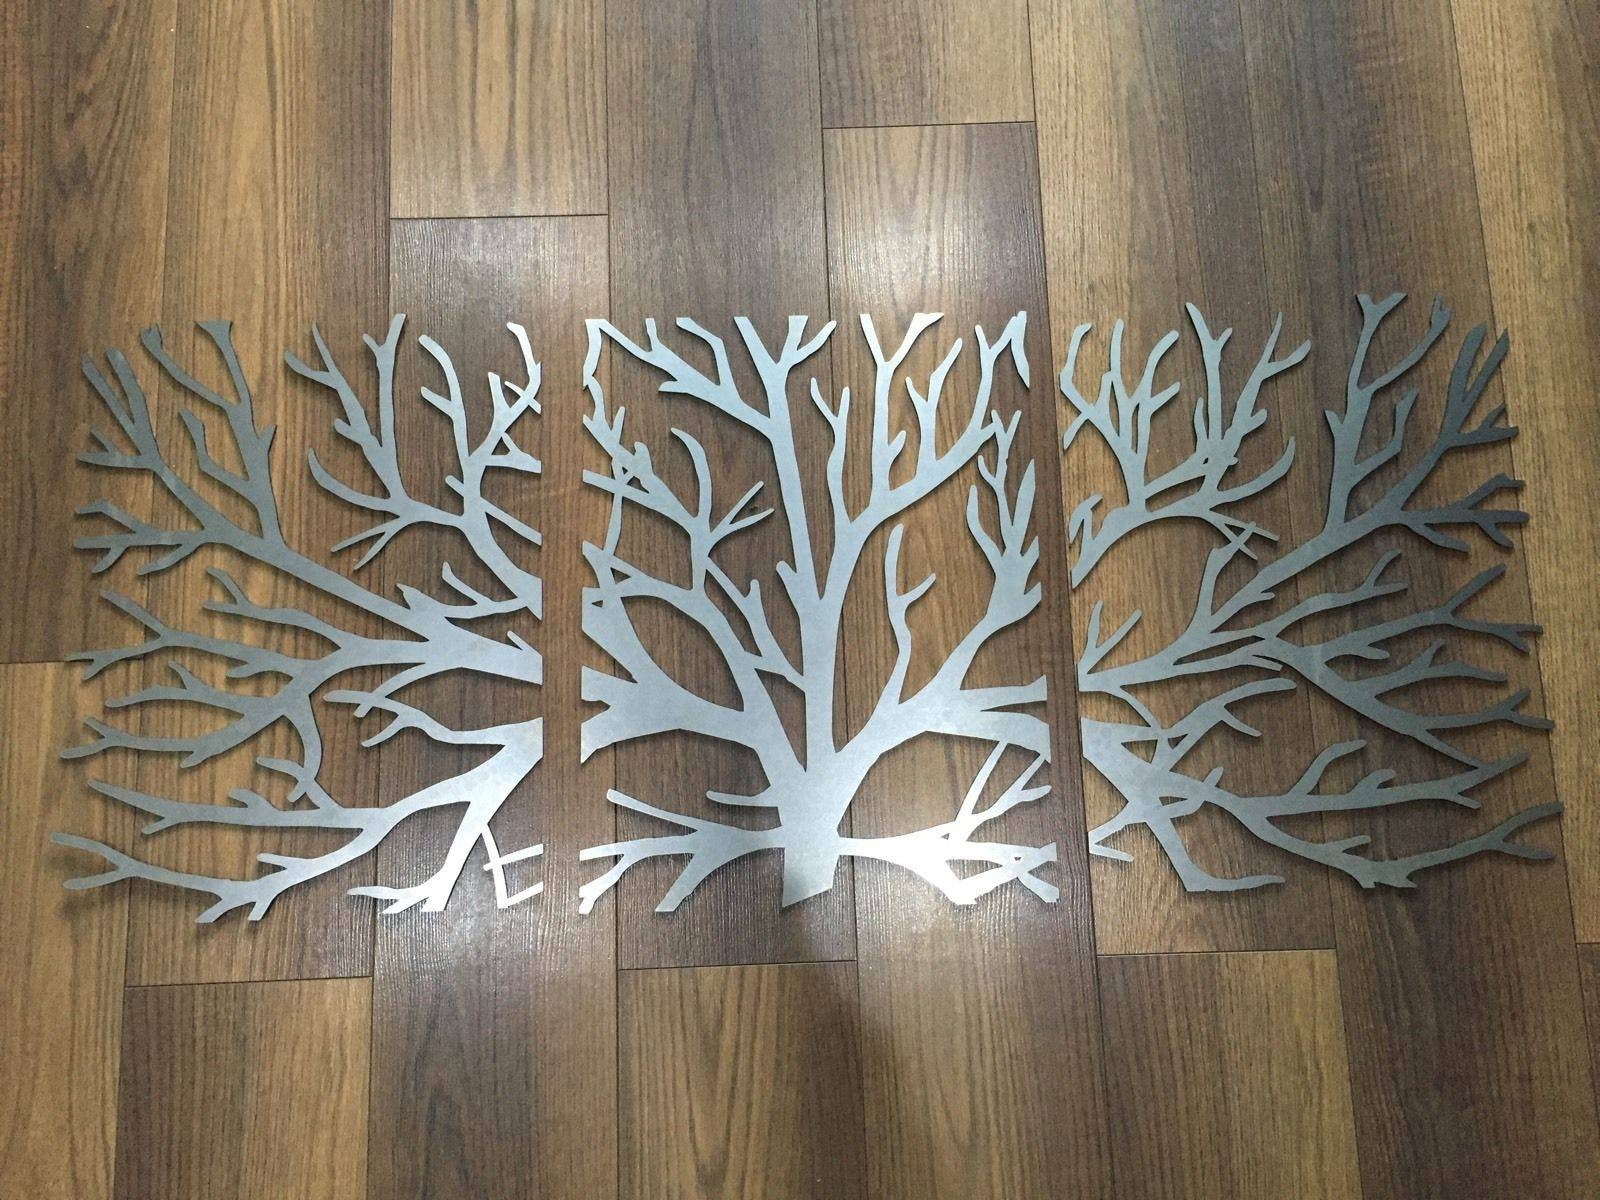 Wall Art Designs: Metal Wall Art Decor And Sculptures Wooden Metal Throughout 2017 Tree Wall Art Sculpture (View 17 of 20)